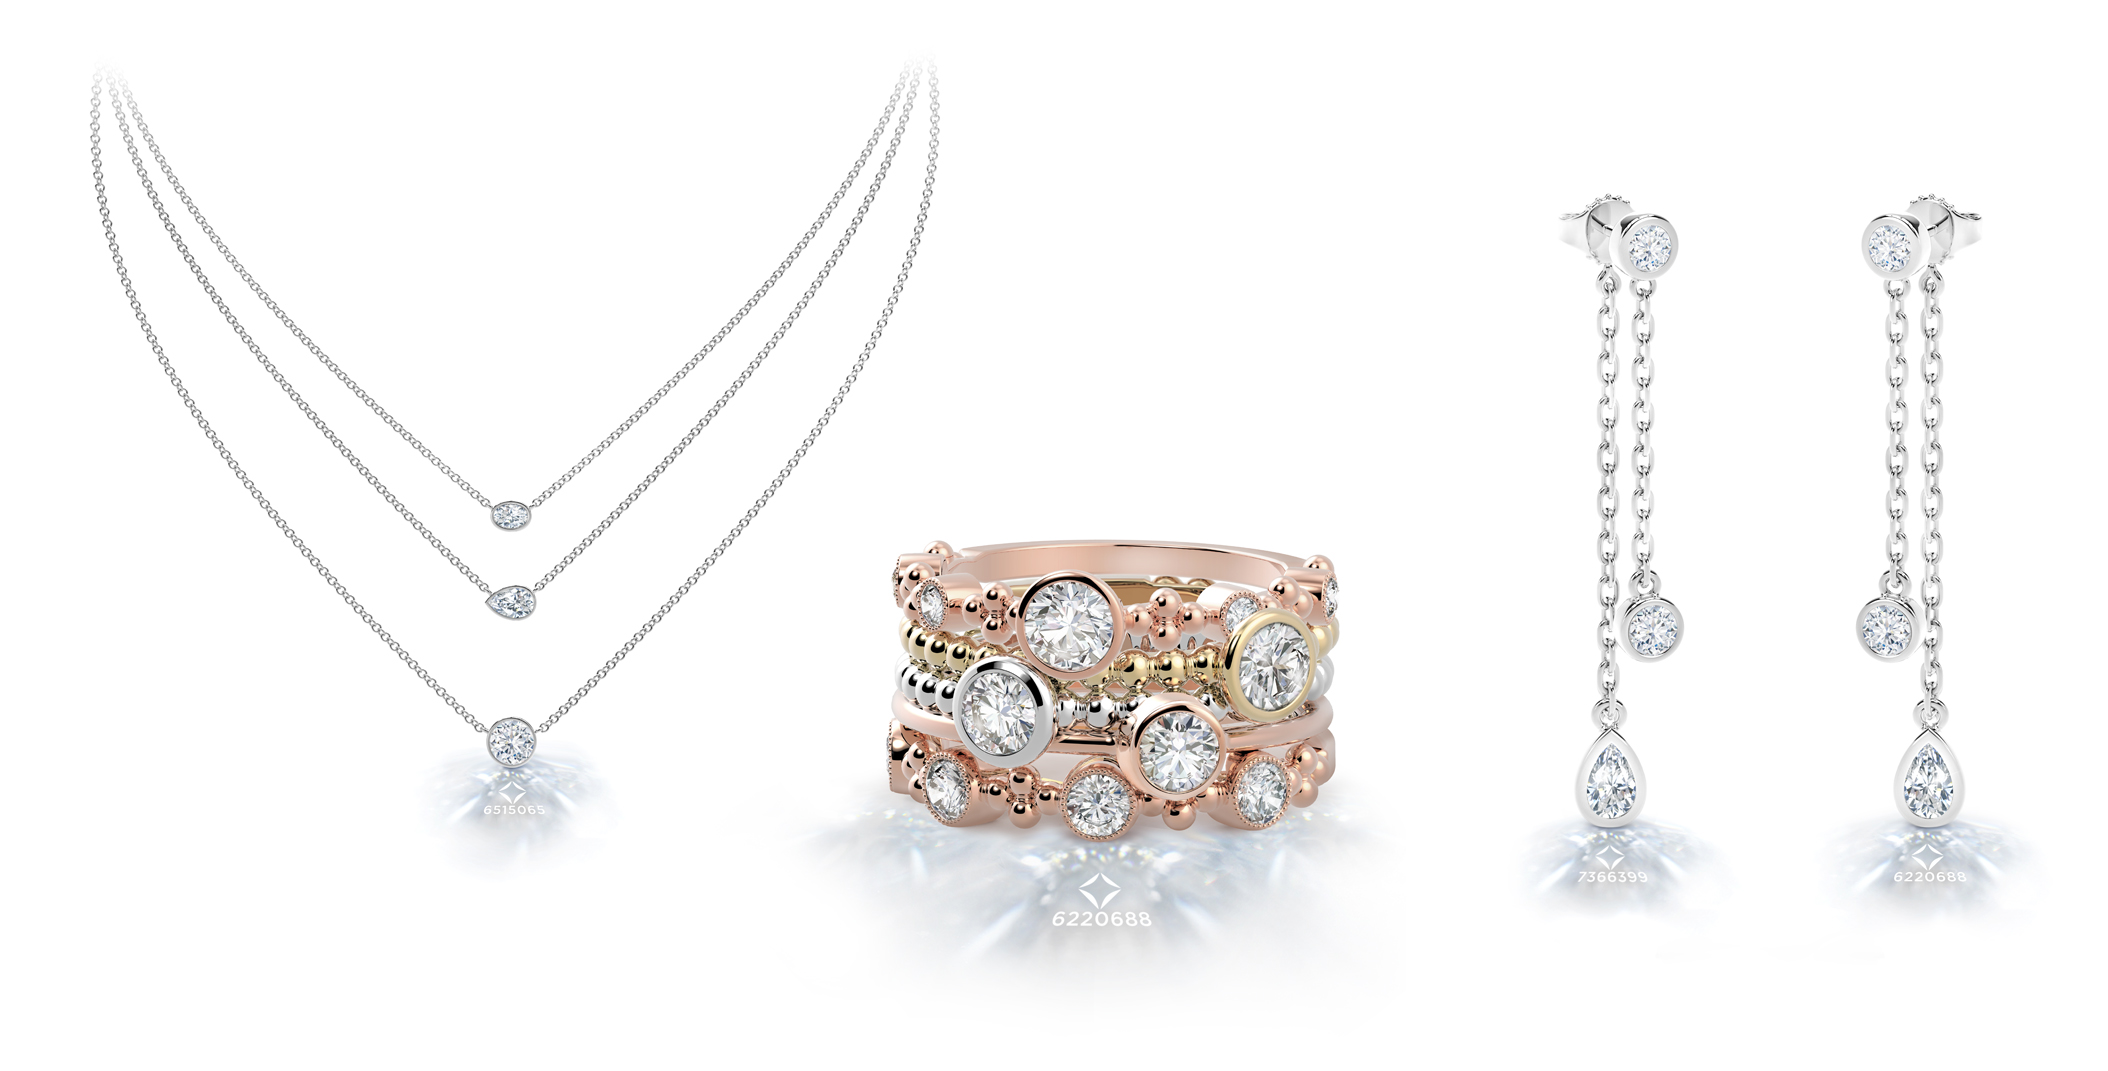 Forevermark - Lugaro - Tribute Collection